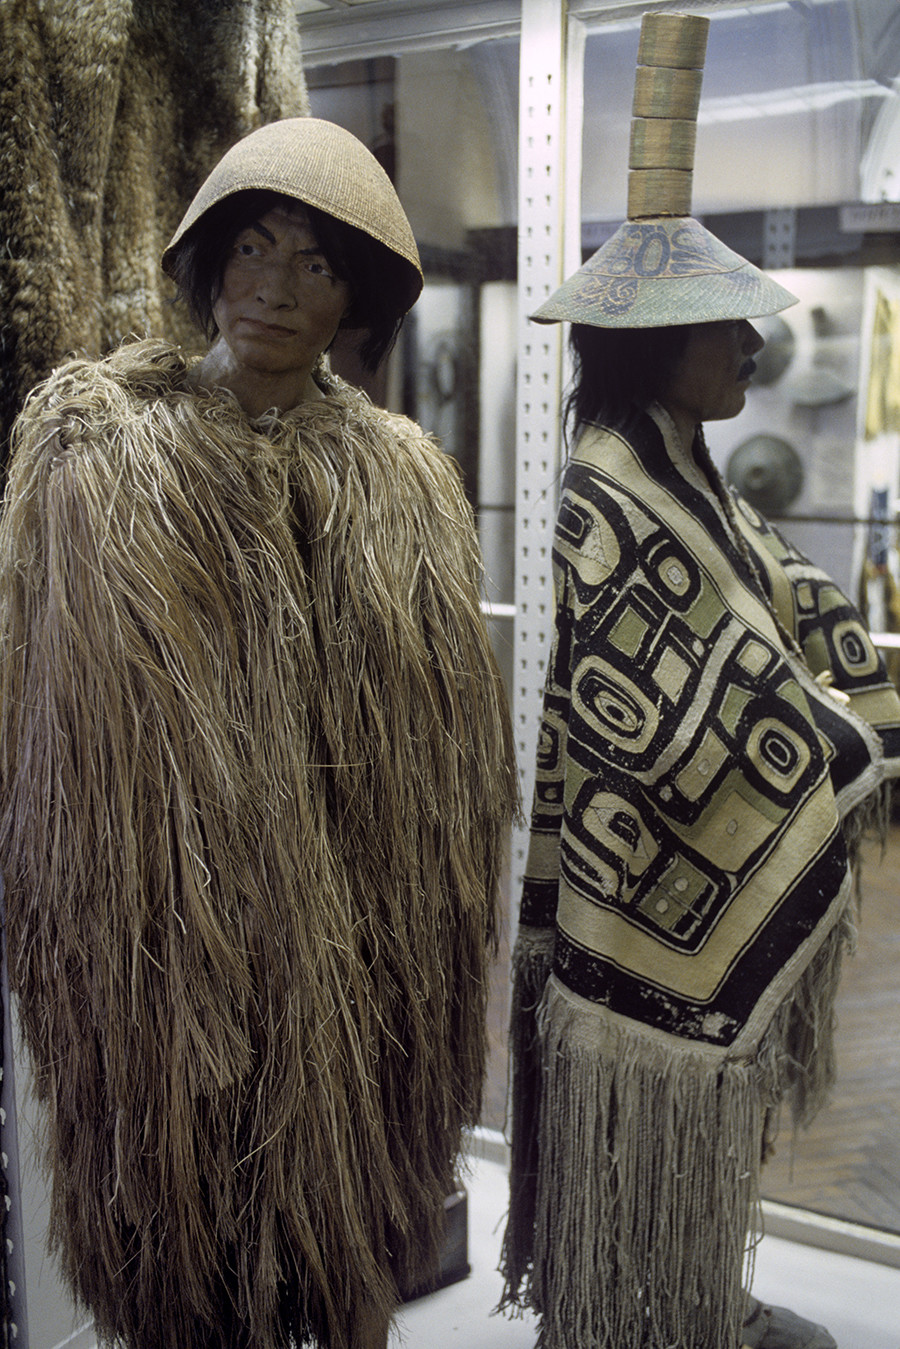 Native Americans wearing cloaks made of hay (left) and vegetable fibers. The 19th century. Showpiece of the Peter the Great Museum of Anthropology and Ethnography (Kunstkamera) of Russia's Academy of Sciences.